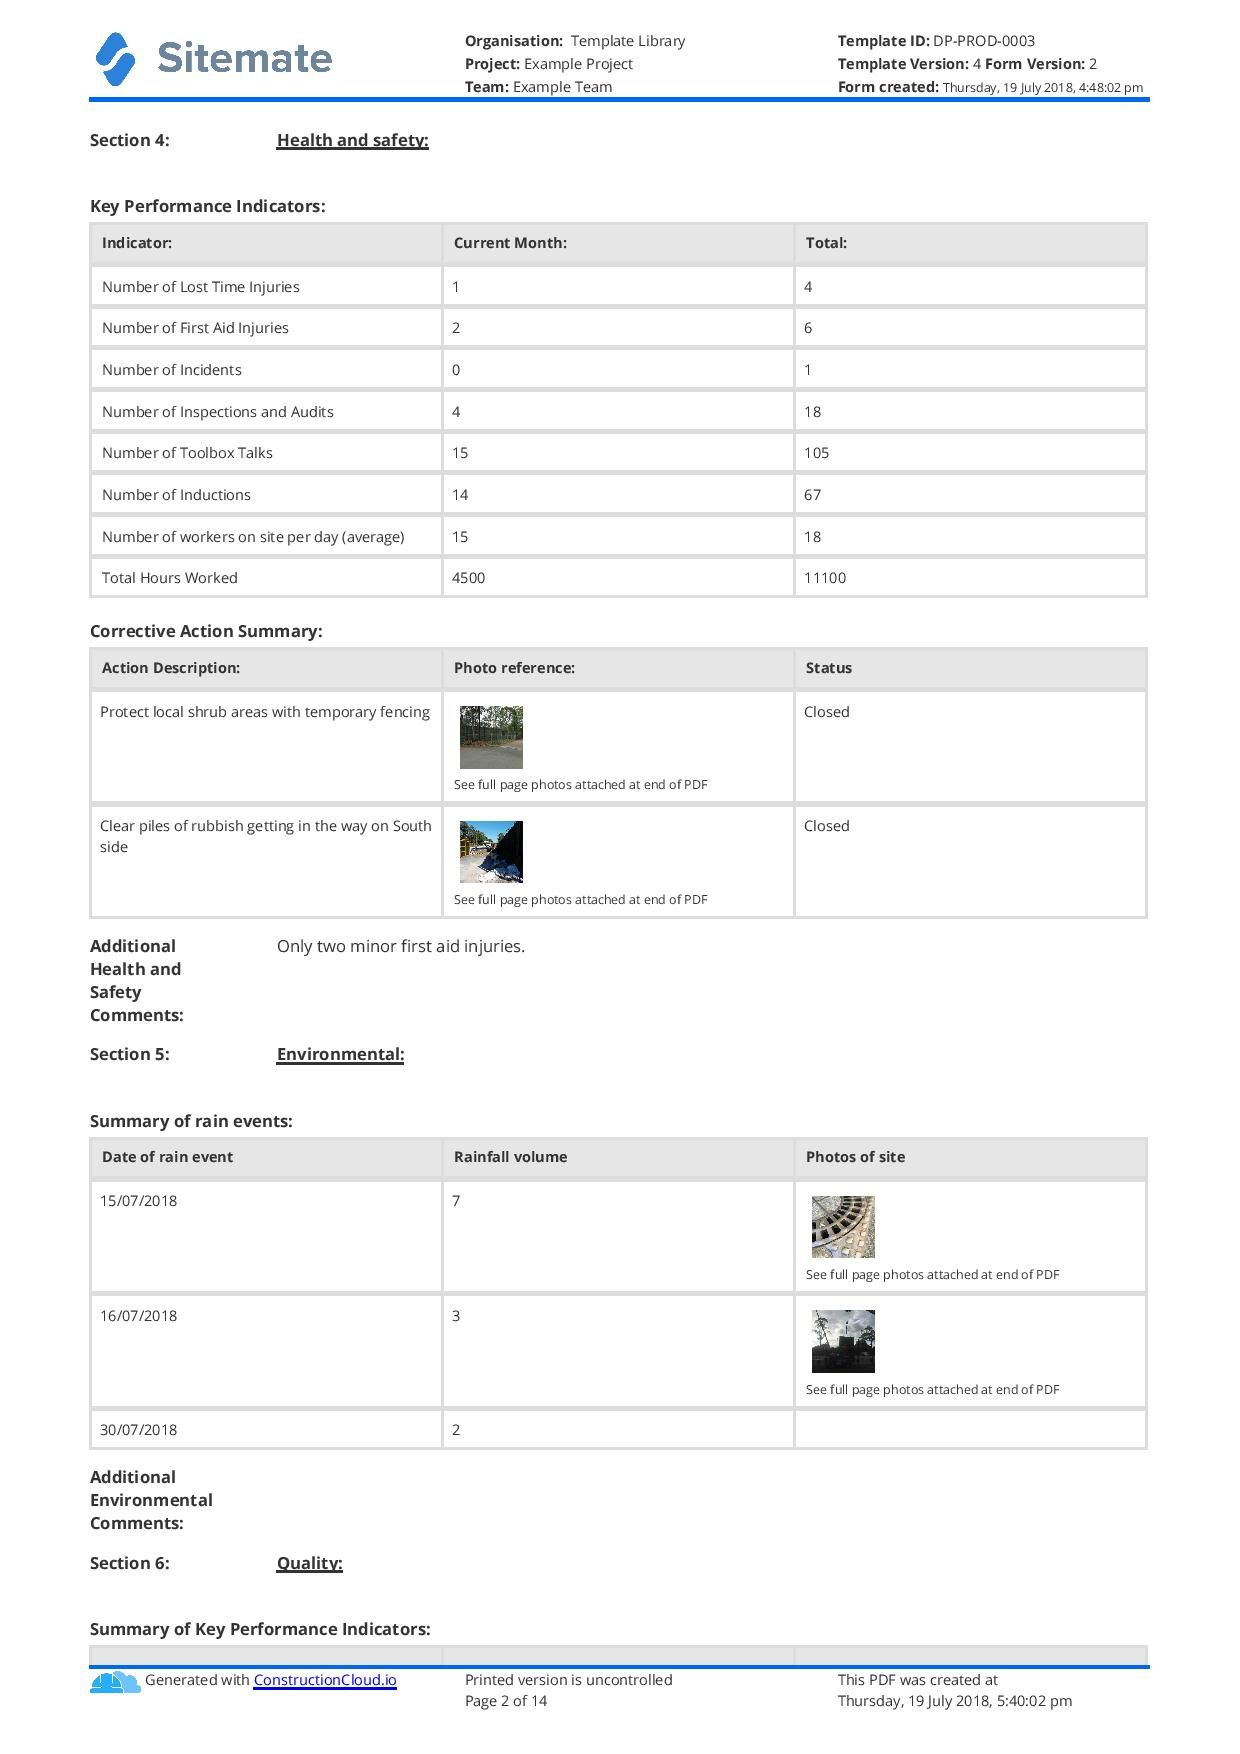 Monthly Construction Progress Report Template: Use This